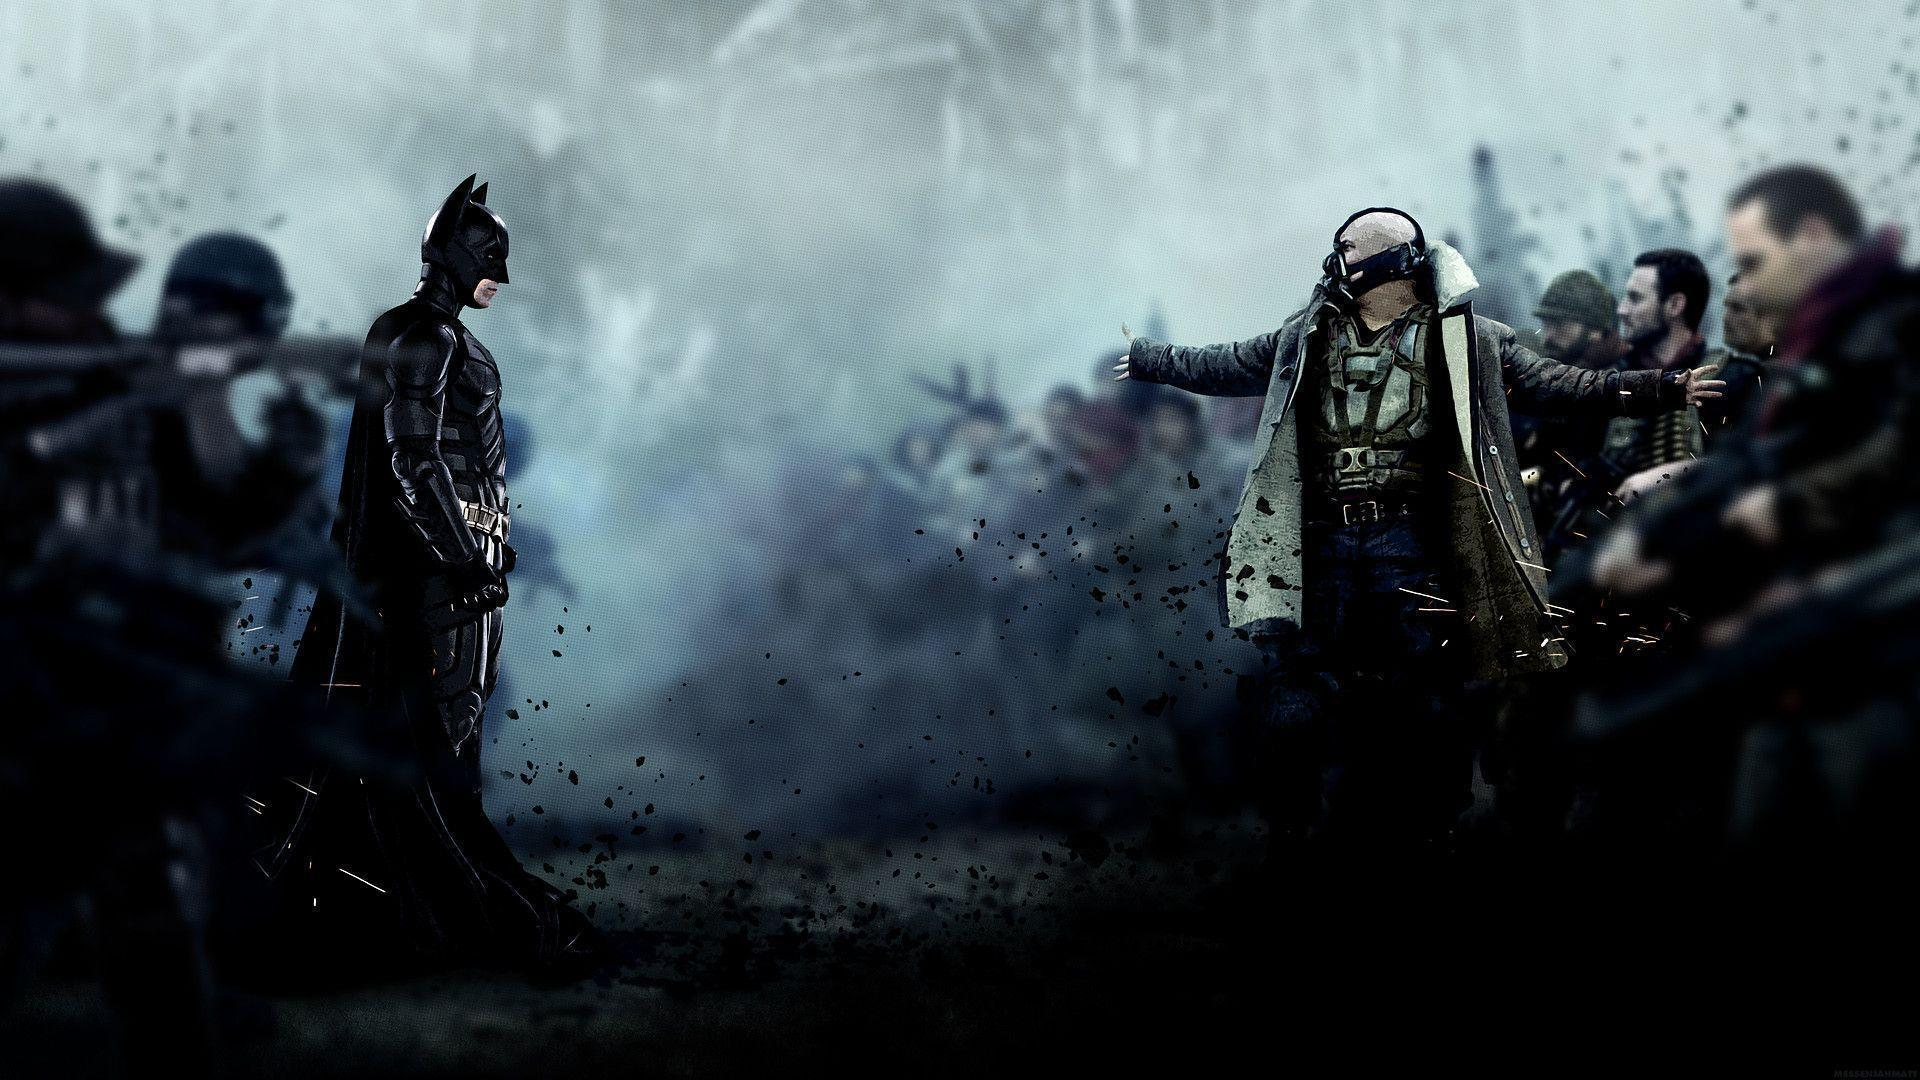 The Dark Knight Rises Wallpapers HD 1920x1080 1920x1080